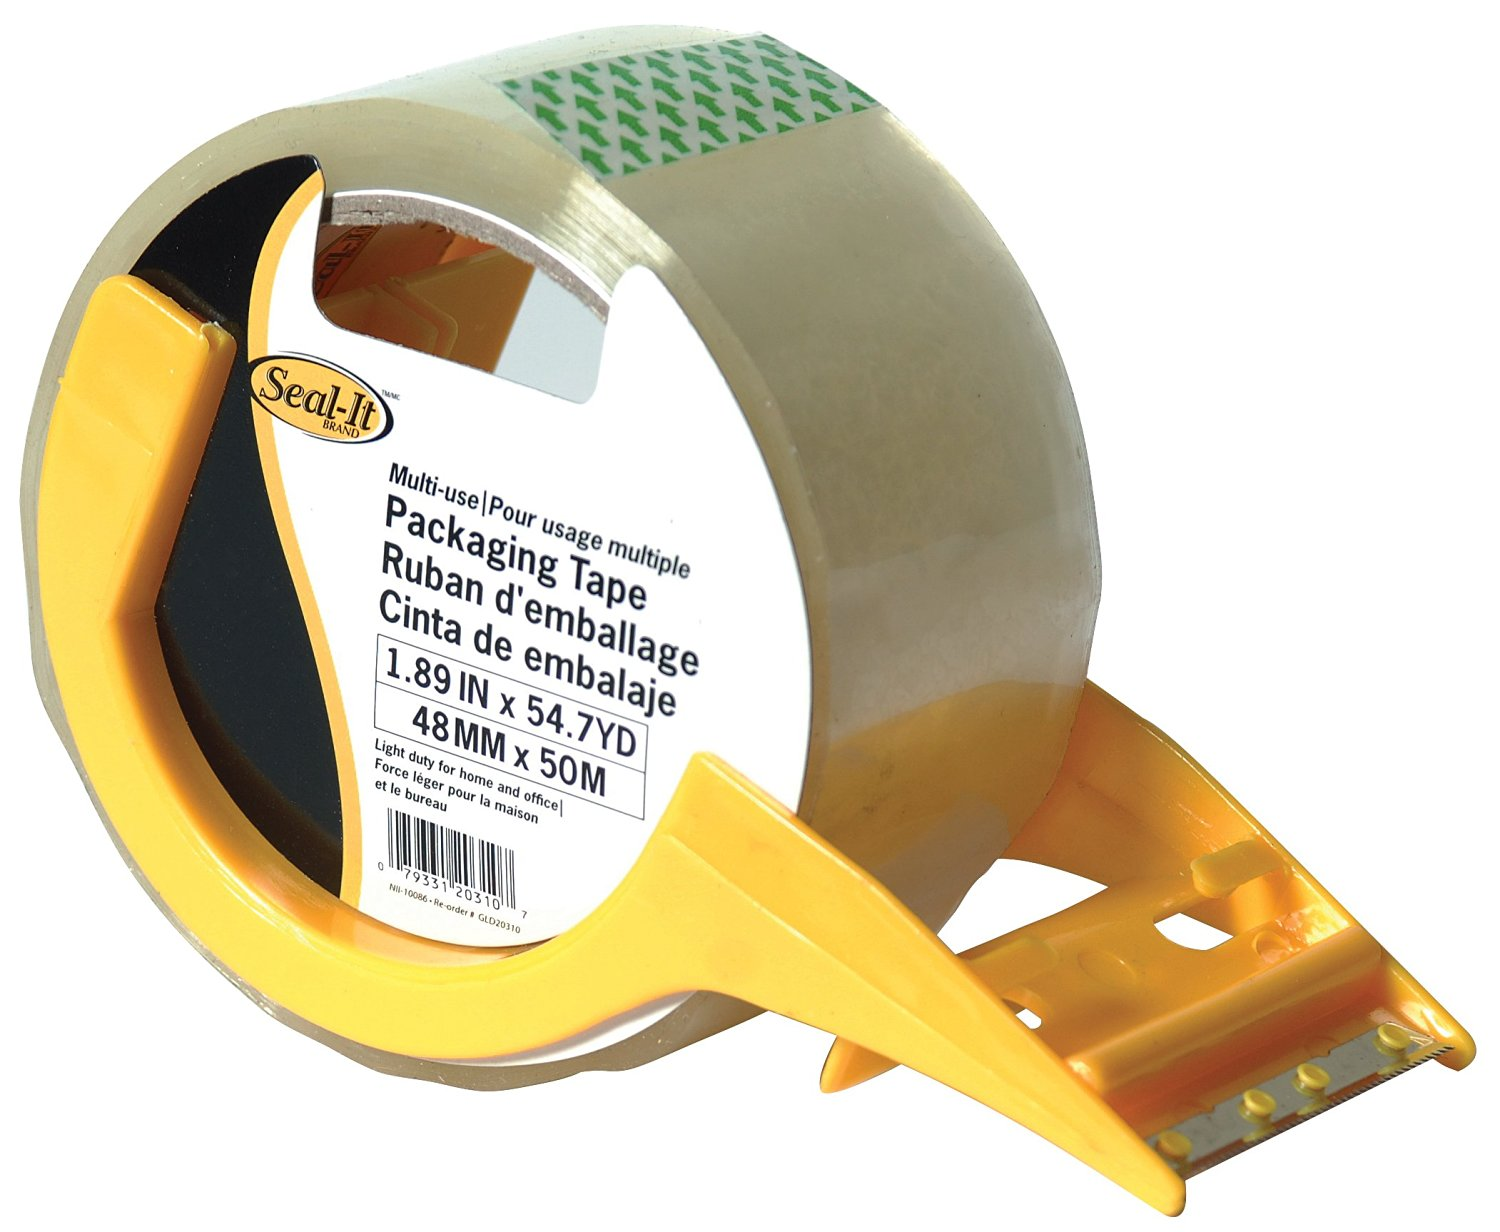 Seal-It 1.88 Inches x 54.7 Yards, Packing Tape, Multi-use, with Dispenser